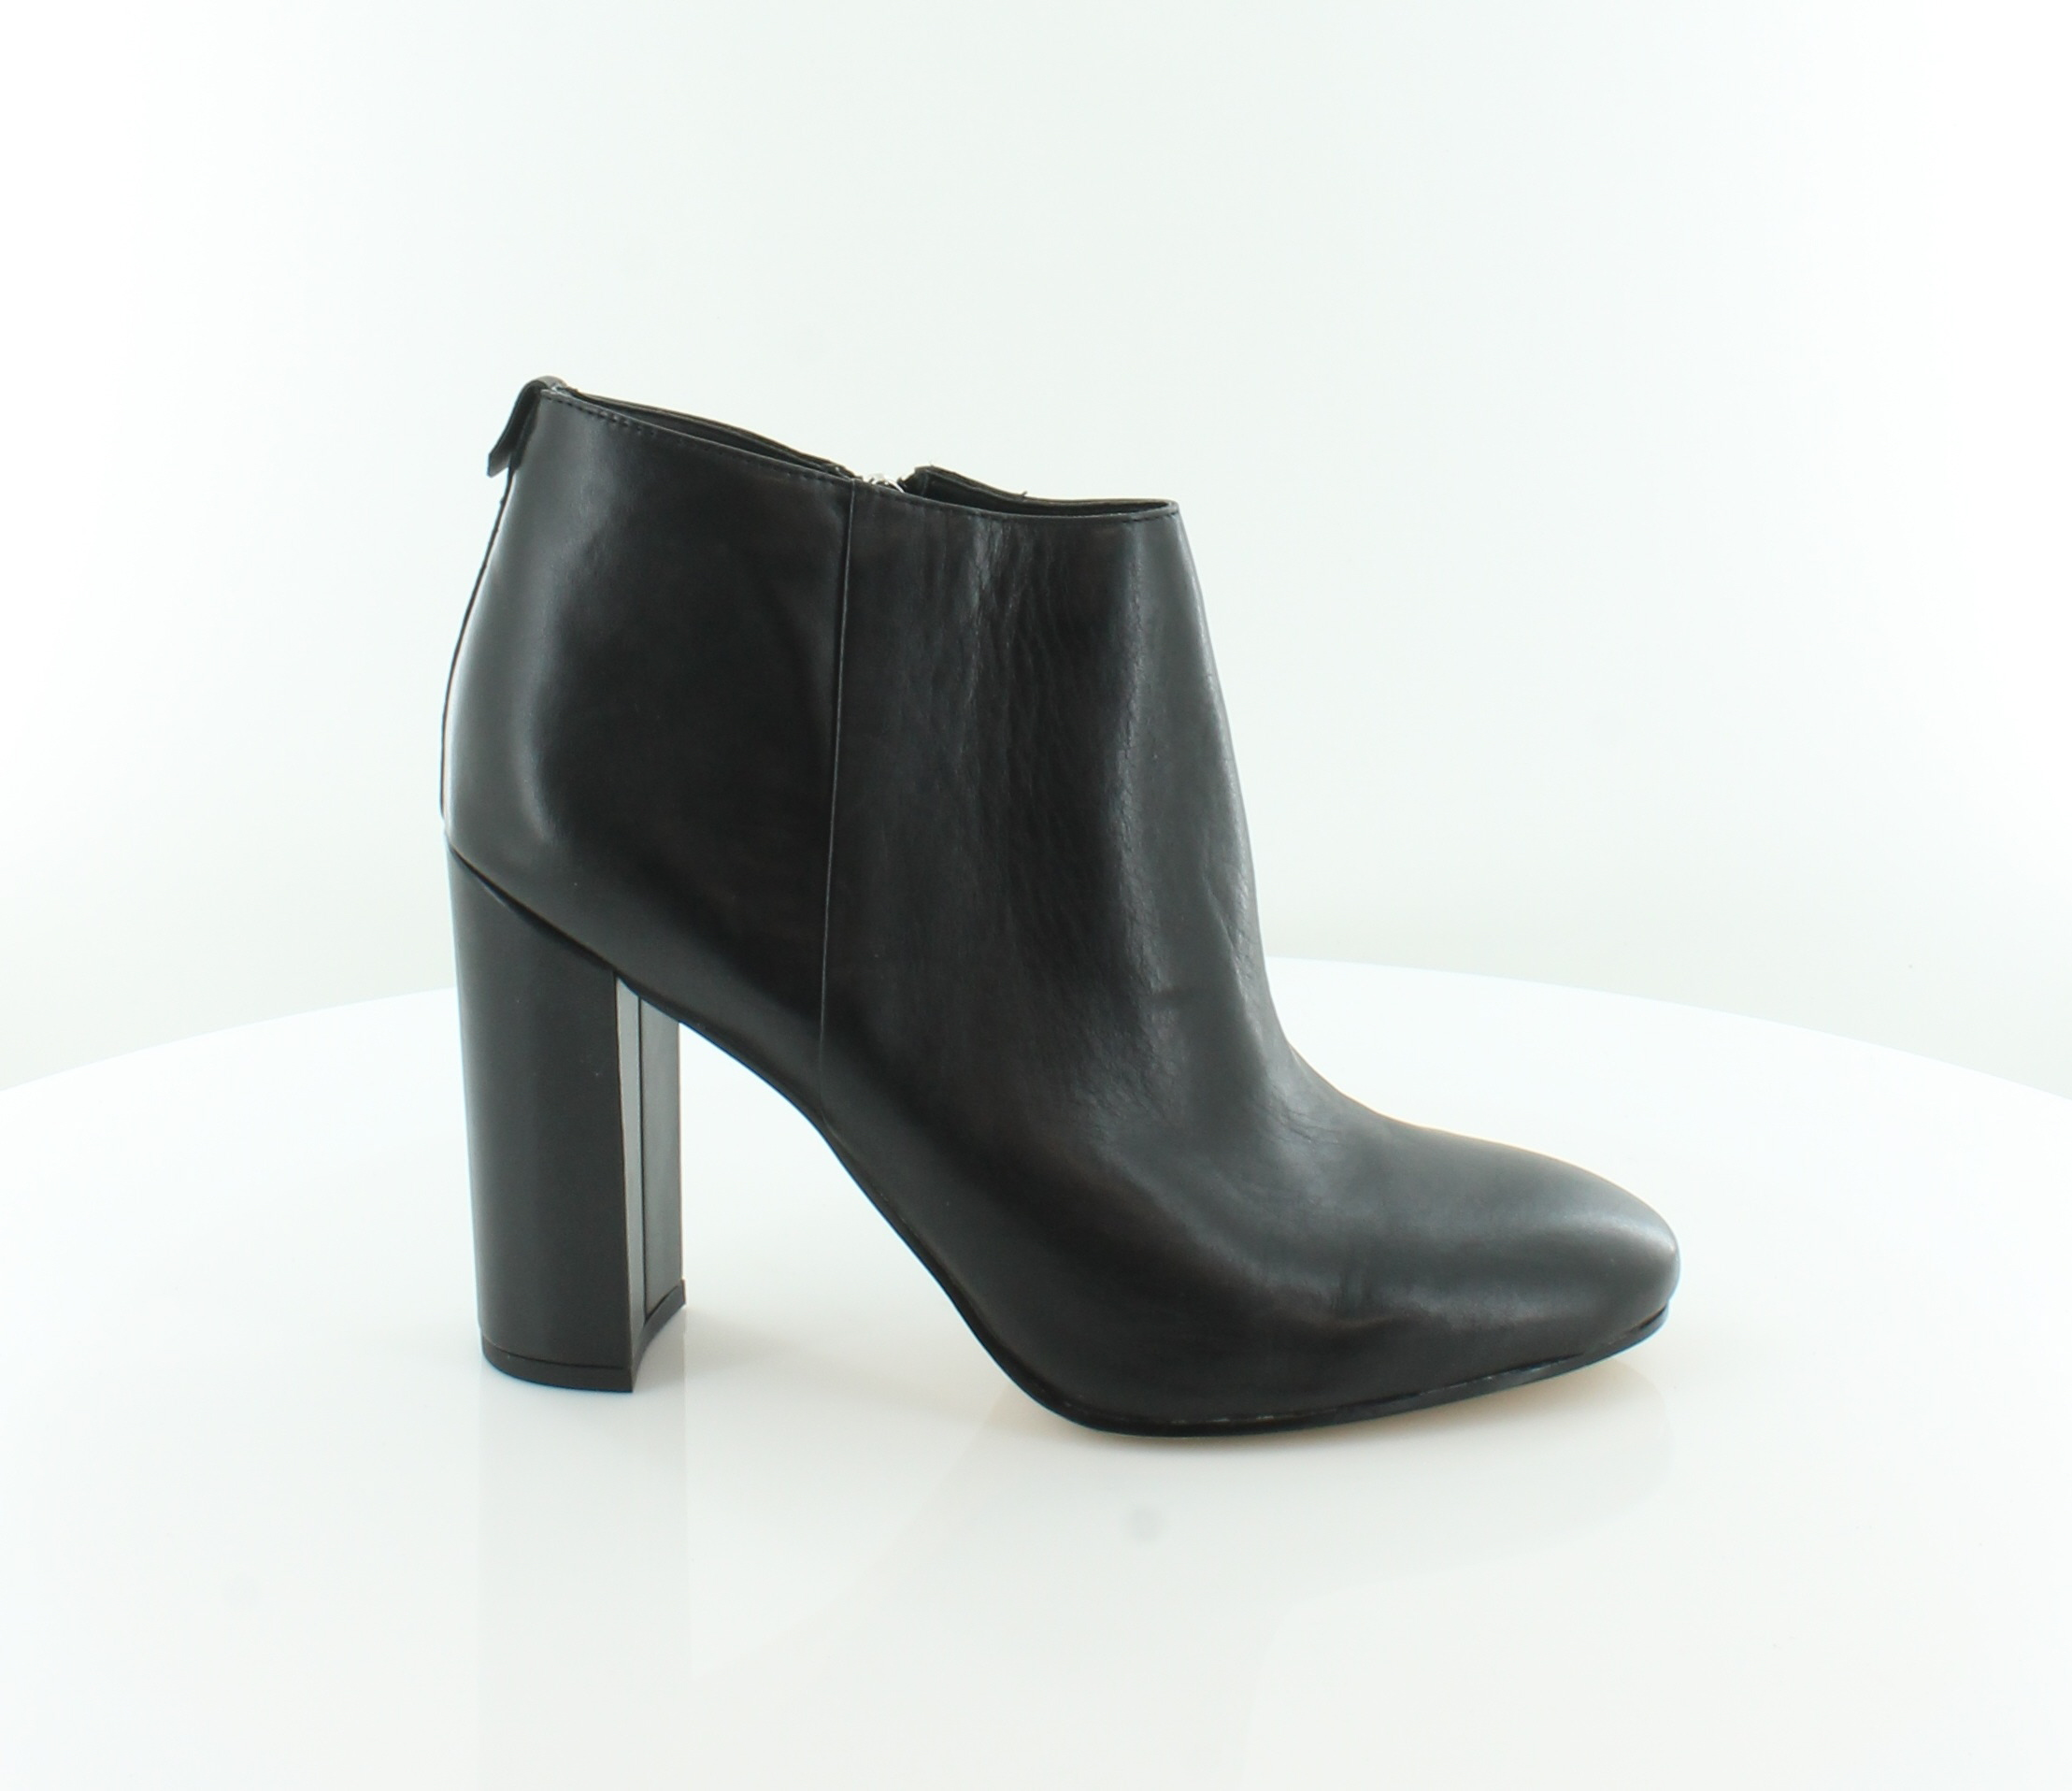 a47290cdf Sam Edelman Cambell Black Womens Shoes Size 10 M BOOTS for sale ...